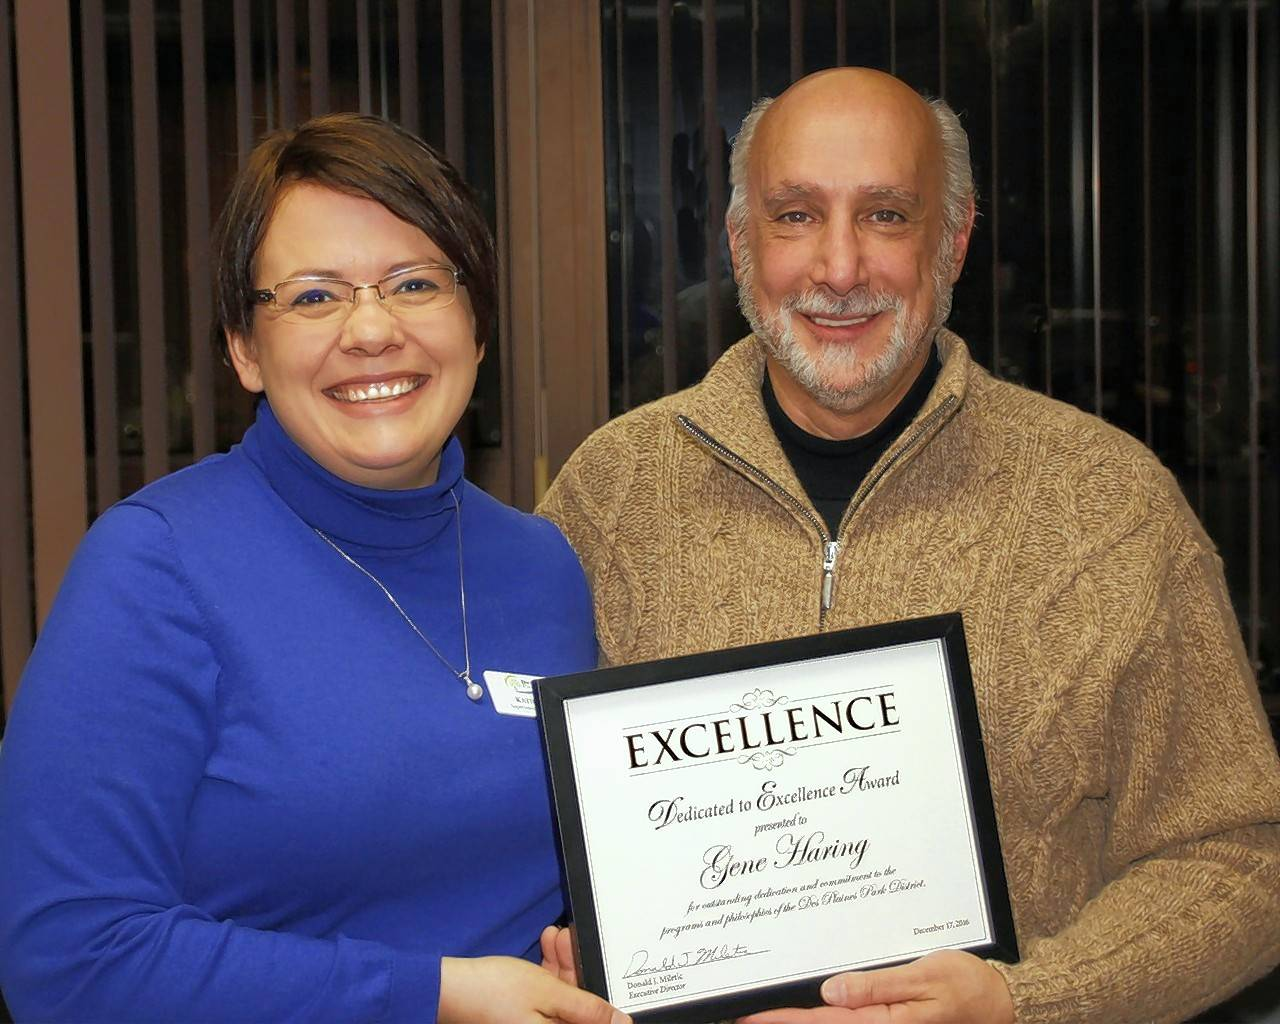 Katie Skibbe, superintendent of business, congratulates Gene Haring on his Dedicated to Excellence Award at the Des Plaines Park District board meeting in December.